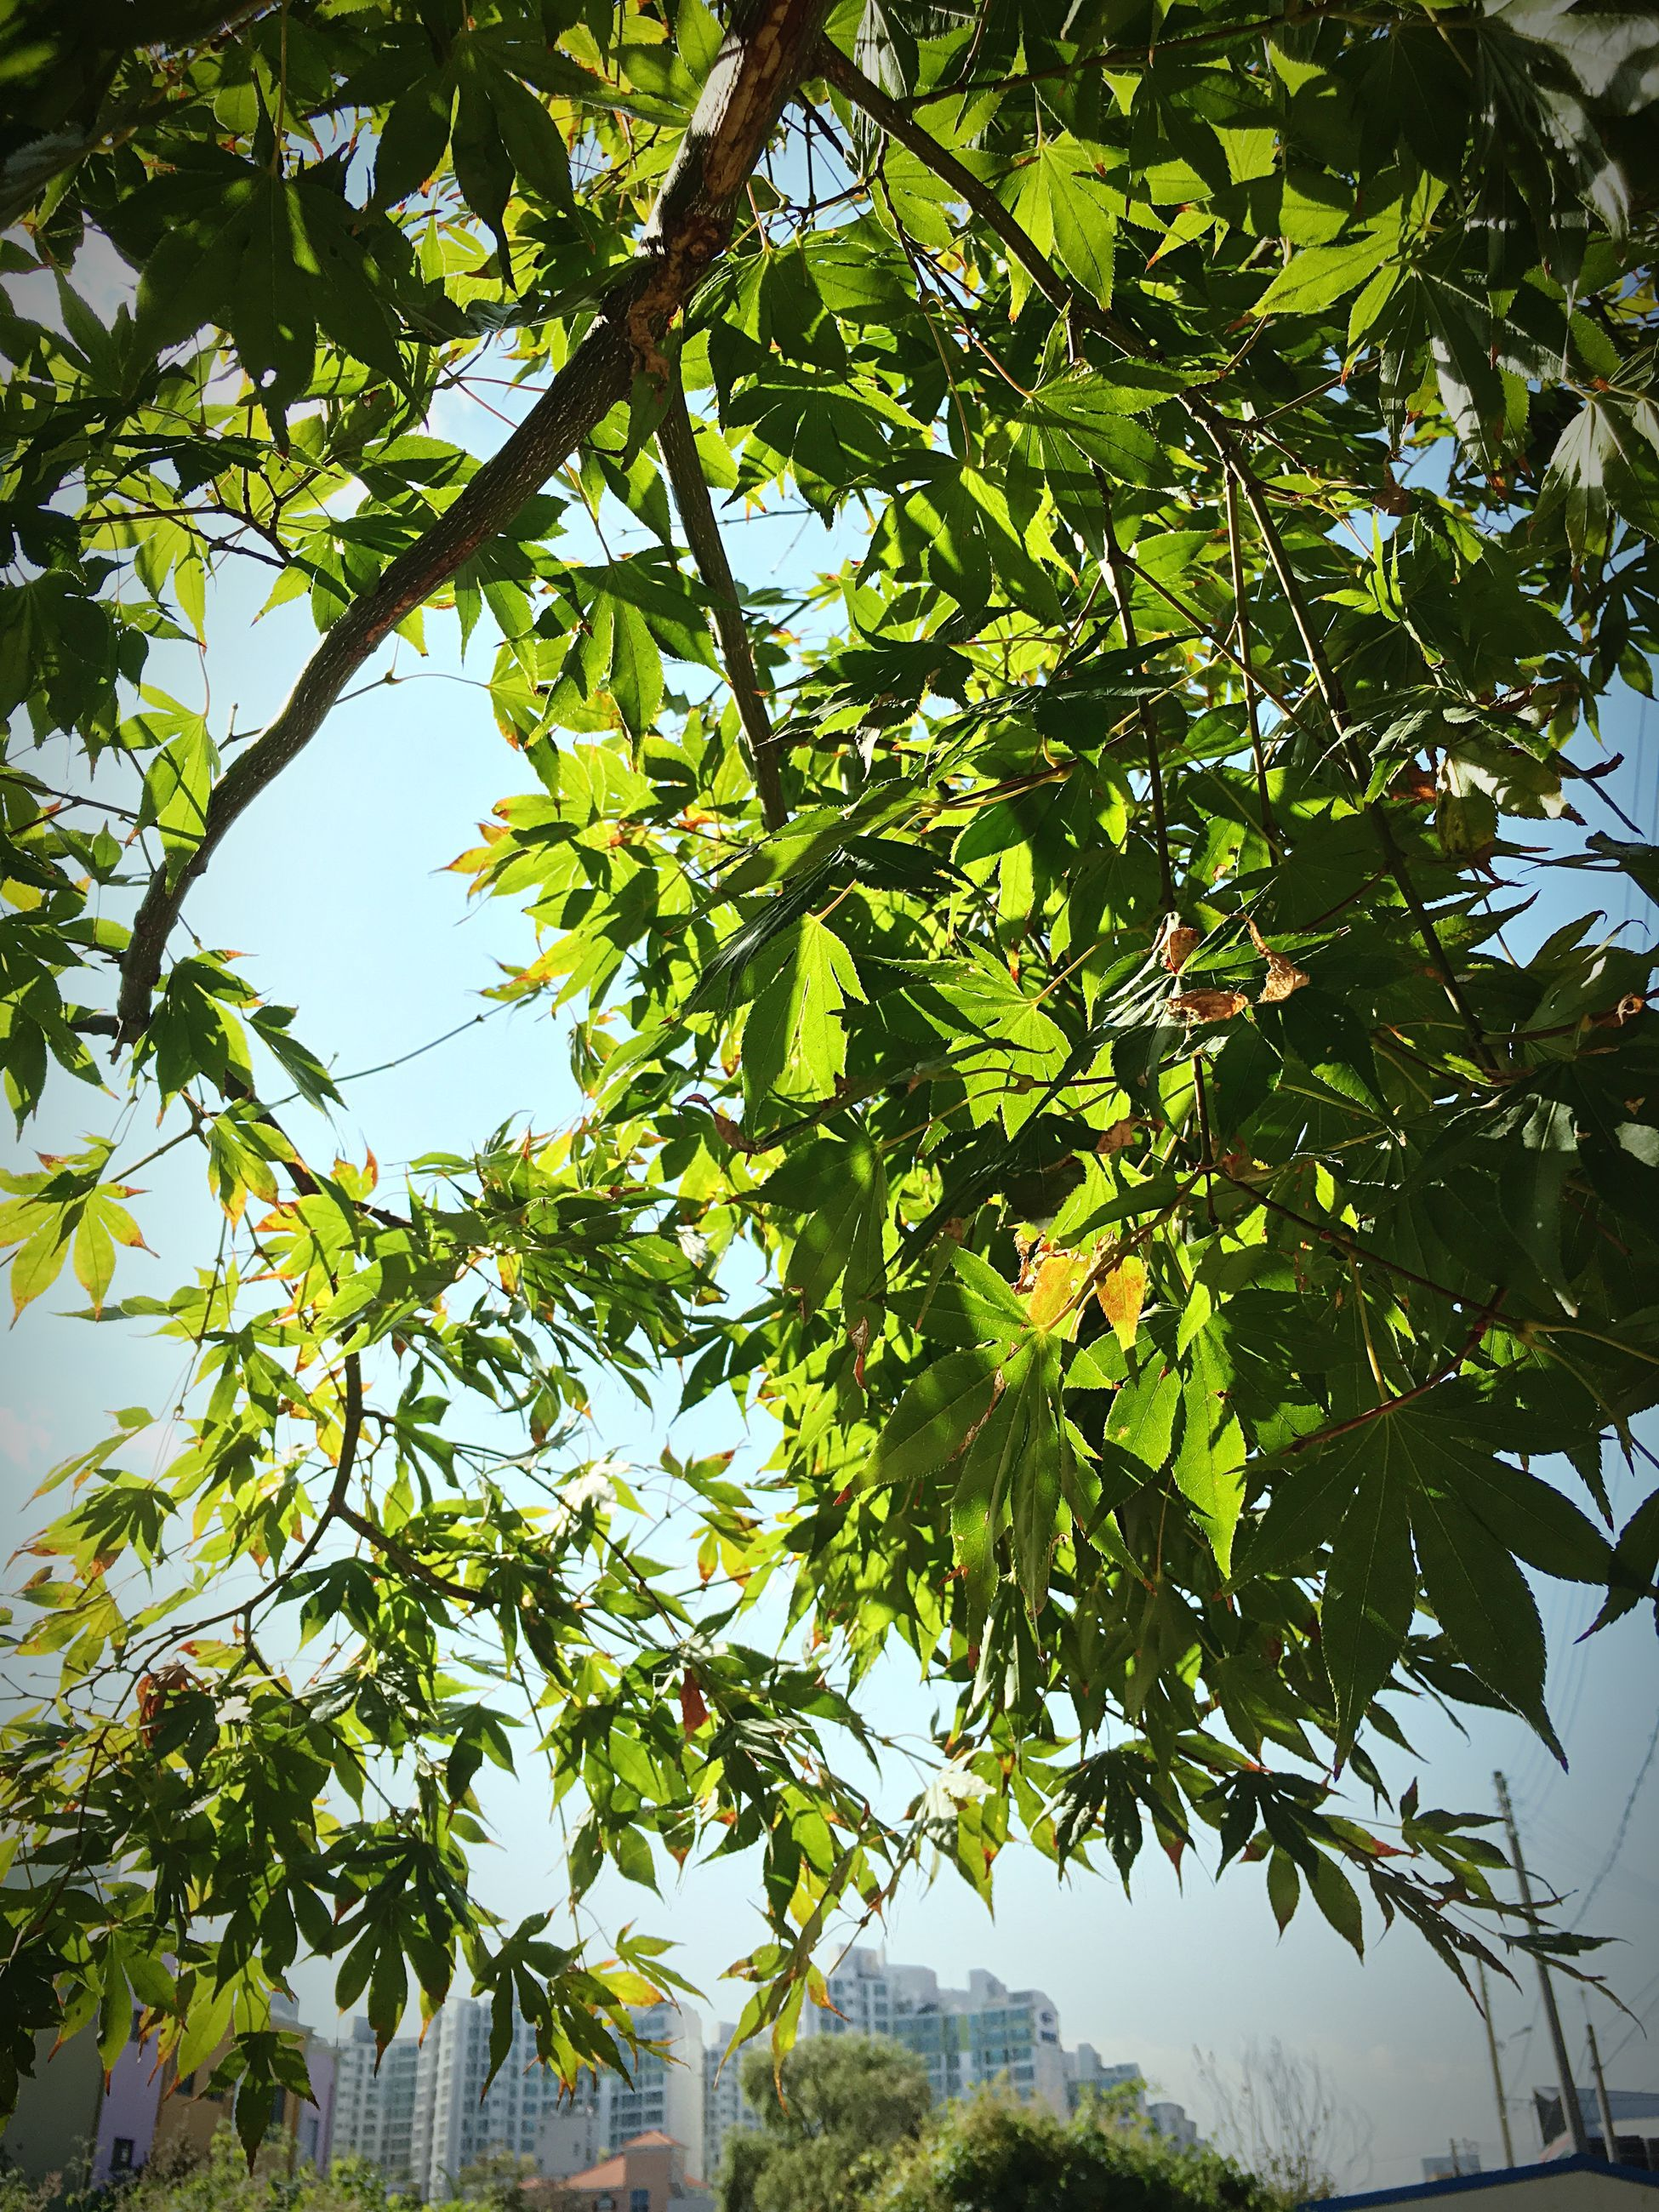 tree, low angle view, branch, growth, leaf, green color, nature, day, outdoors, sky, tranquility, beauty in nature, no people, built structure, plant, tree trunk, growing, lush foliage, clear sky, green